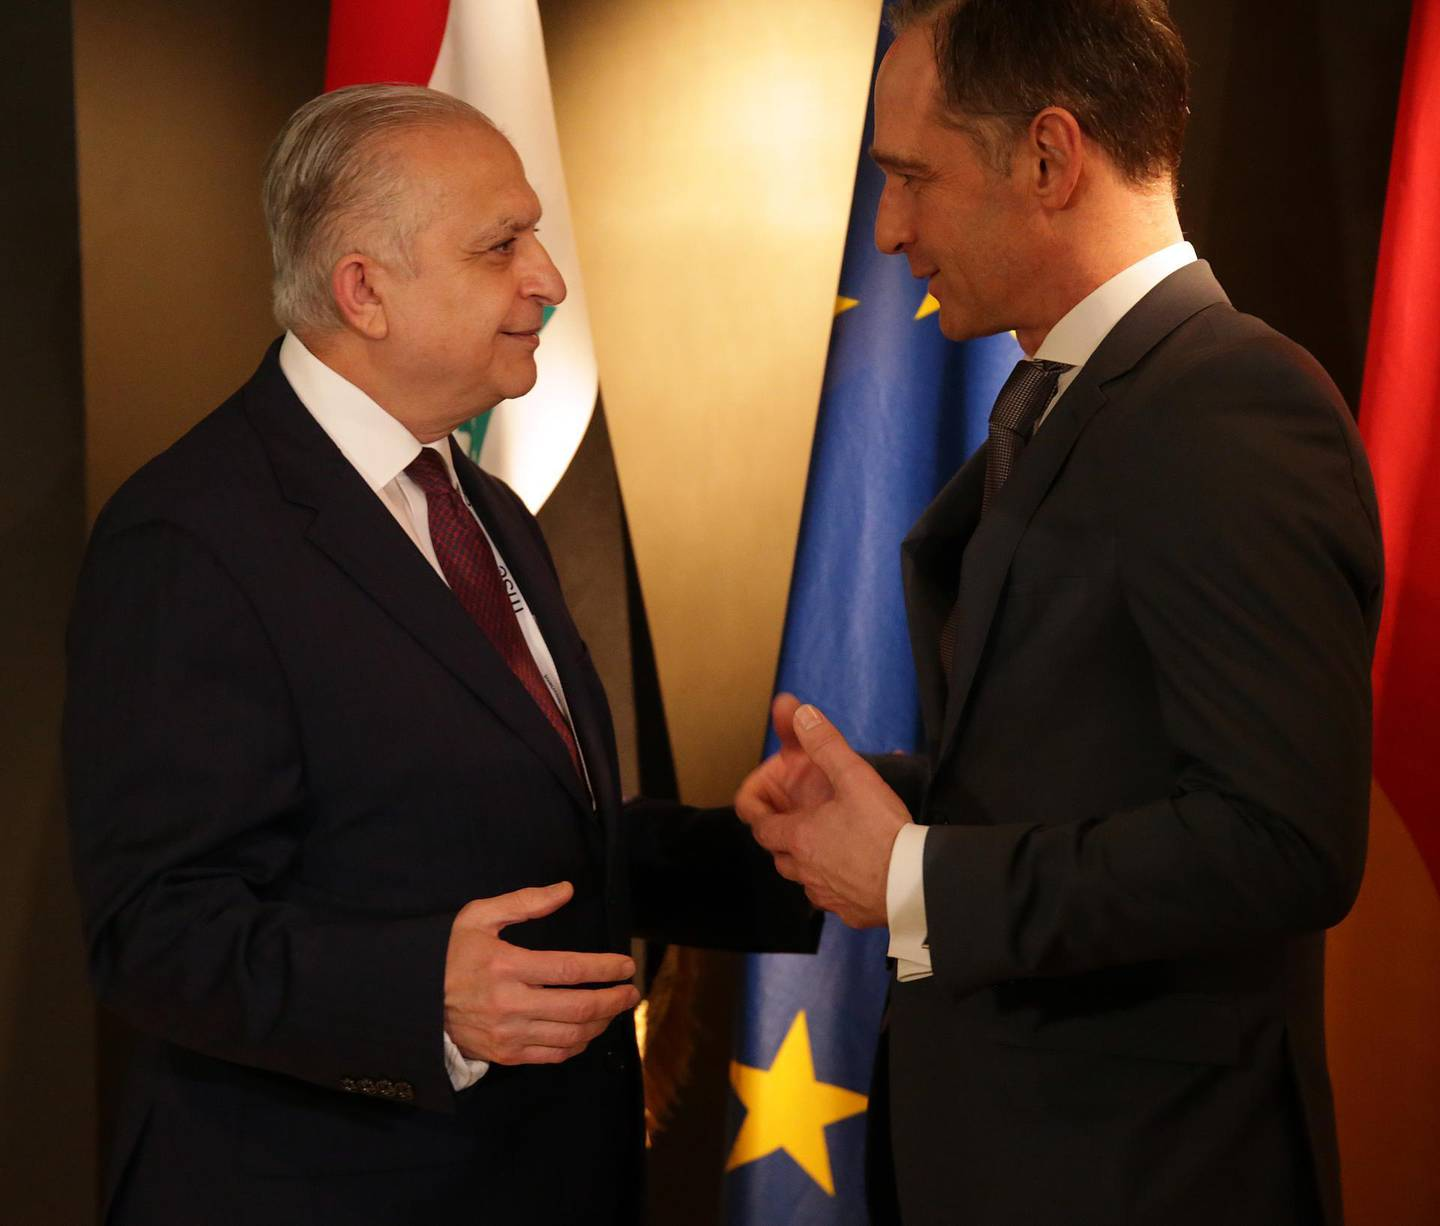 MUNICH, GERMANY - FEBRUARY 14: Mohamed Ali Al-Hakim (L), minister of foreign affairs of Iraq and his German colleague Heiko Maas meet for a bilateral meeting at the 2020 Munich Security Conference (MSC) on February 14, 2020 in Munich, Germany. The annual conference brings together global political, security and business leaders to discuss pressing issues, which this year include climate change, the US commitment to NATO and the spread of disinformation campaigns. (Photo by Johannes Simon/Getty Images)